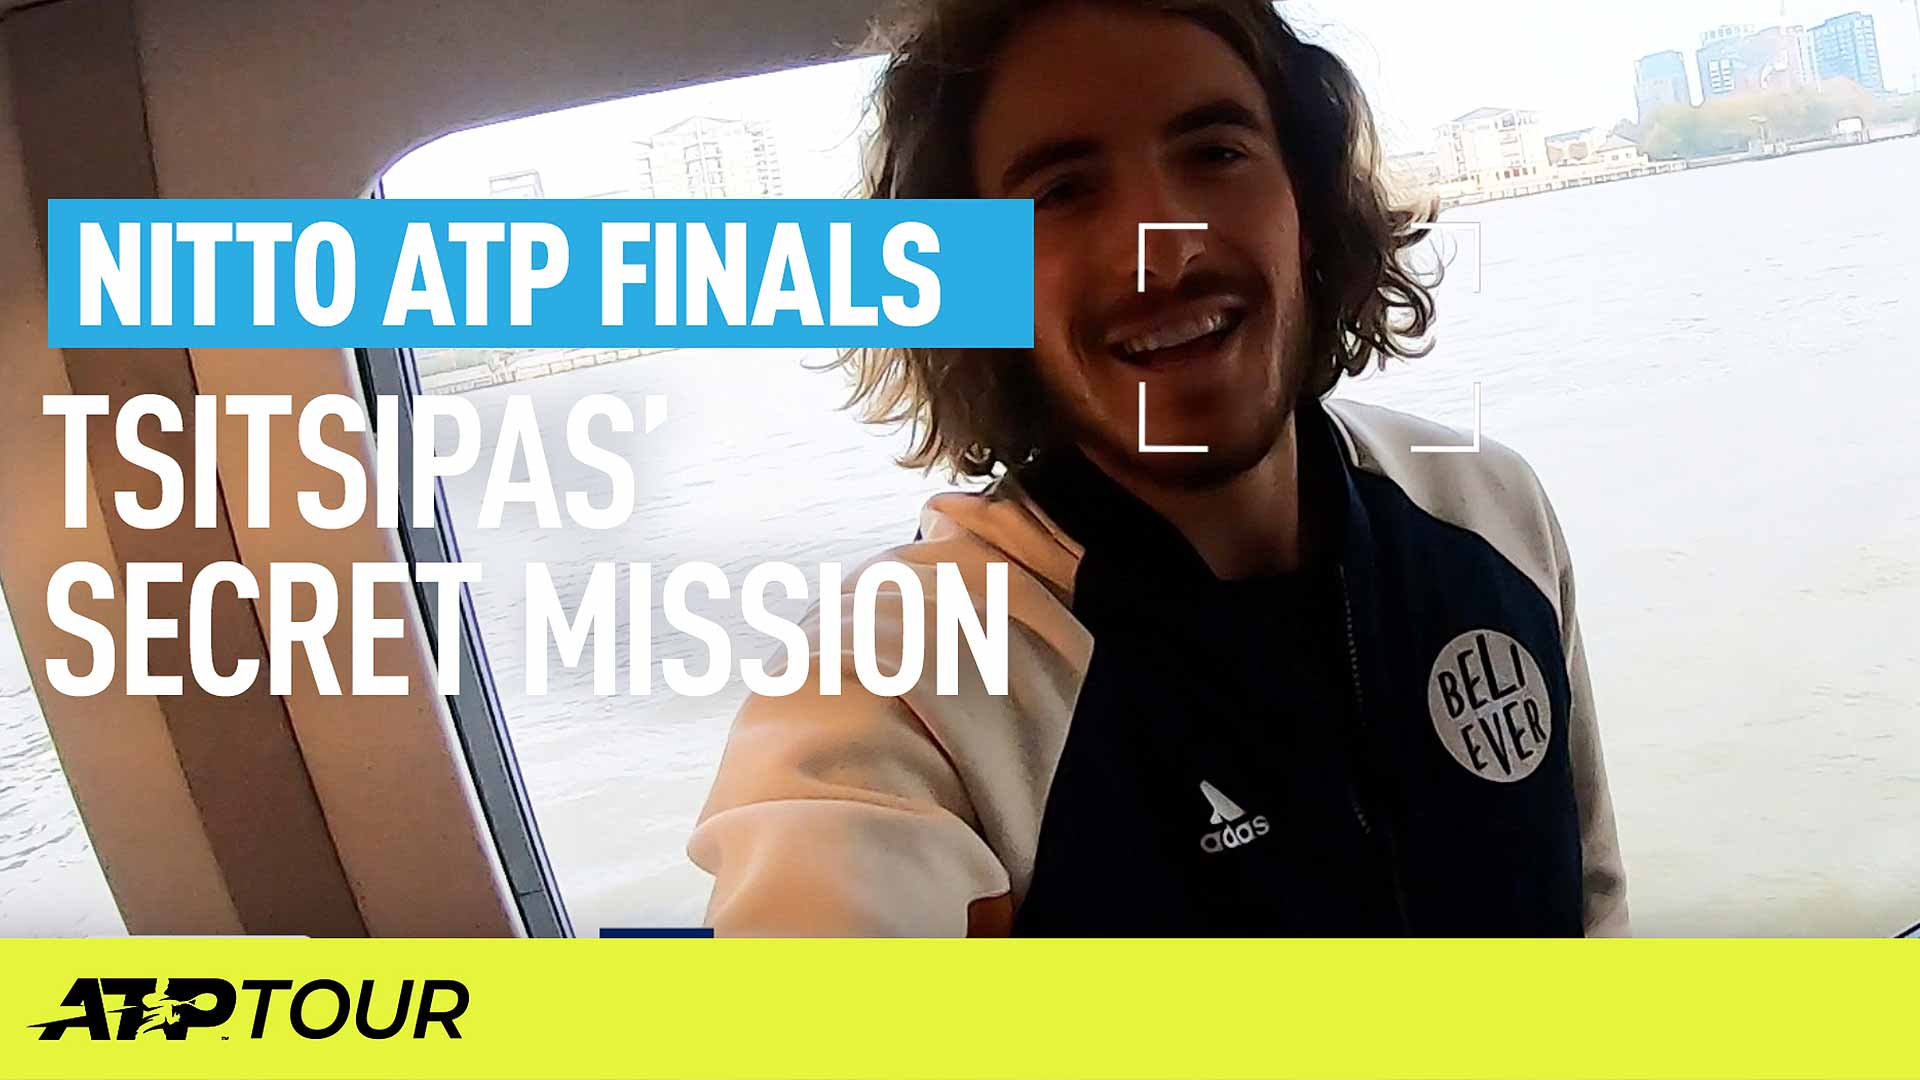 Stefanos Tsitsipas goes on a secret mission at the Nitto ATP Finals in London.